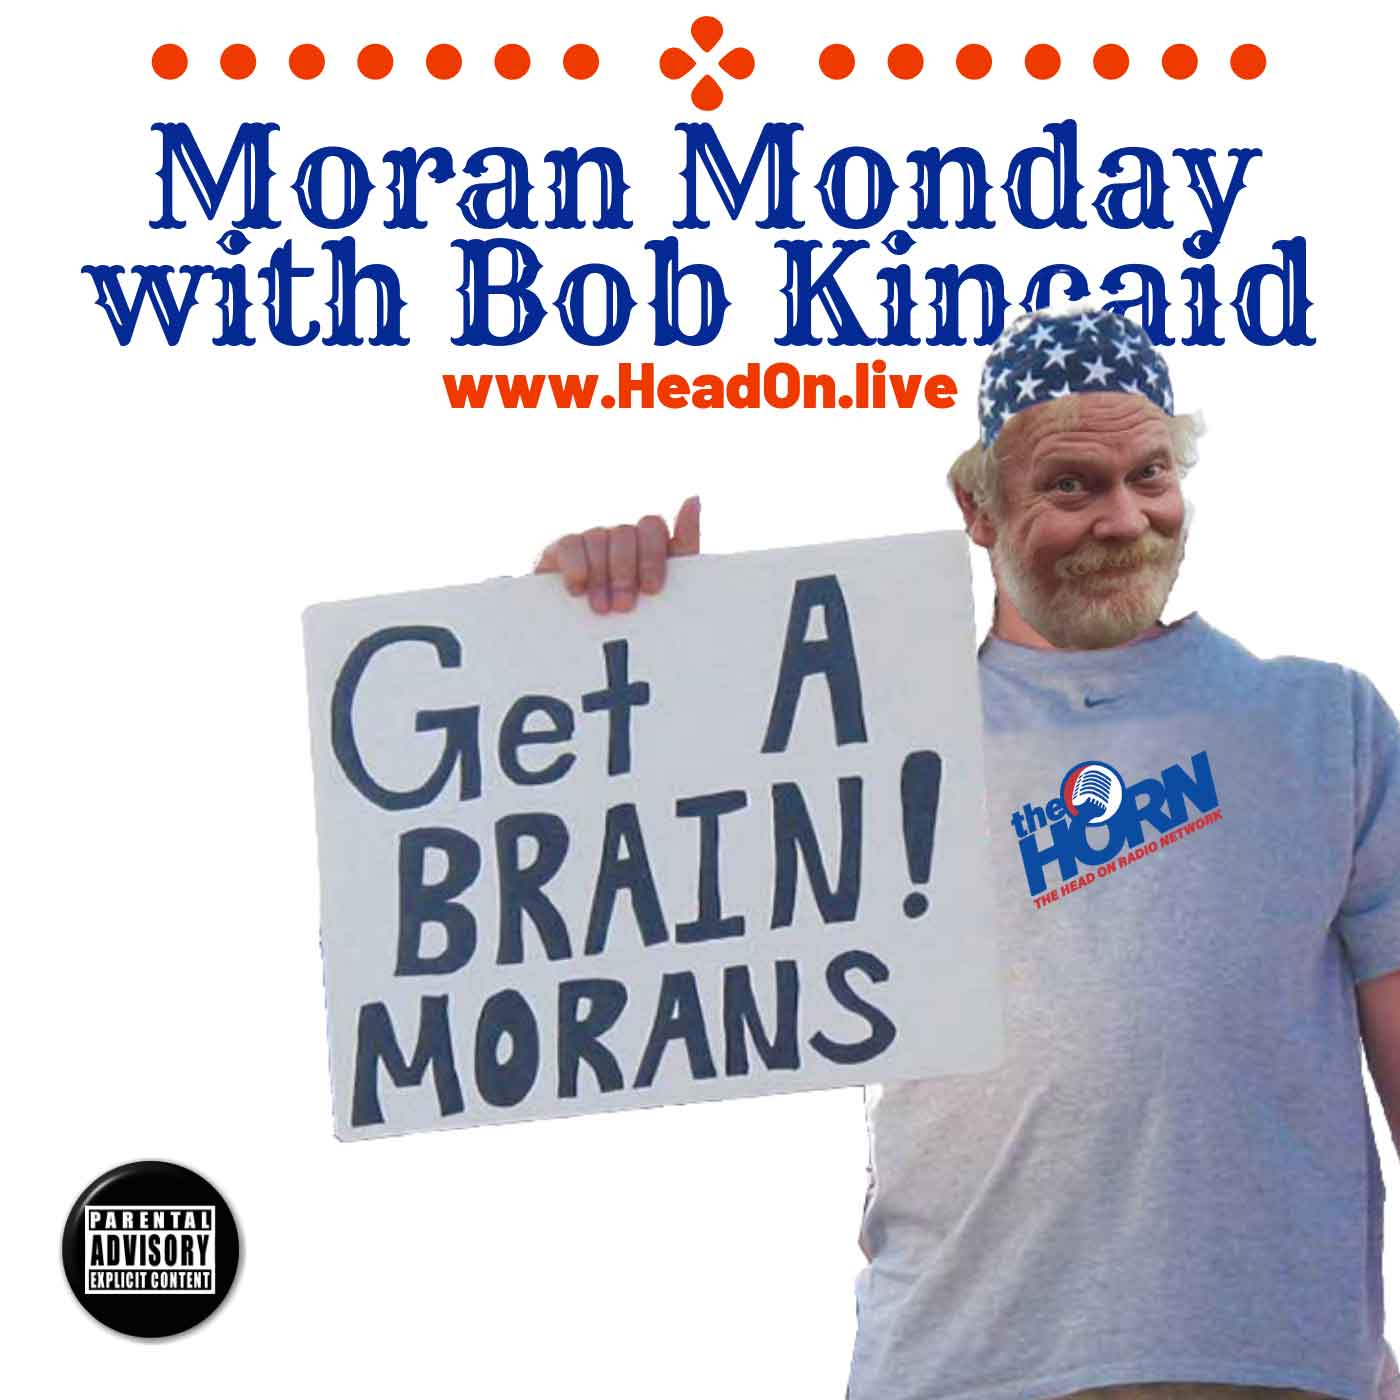 Morona Monday, Head-ON With Bob Kincaid, 15 June 2020